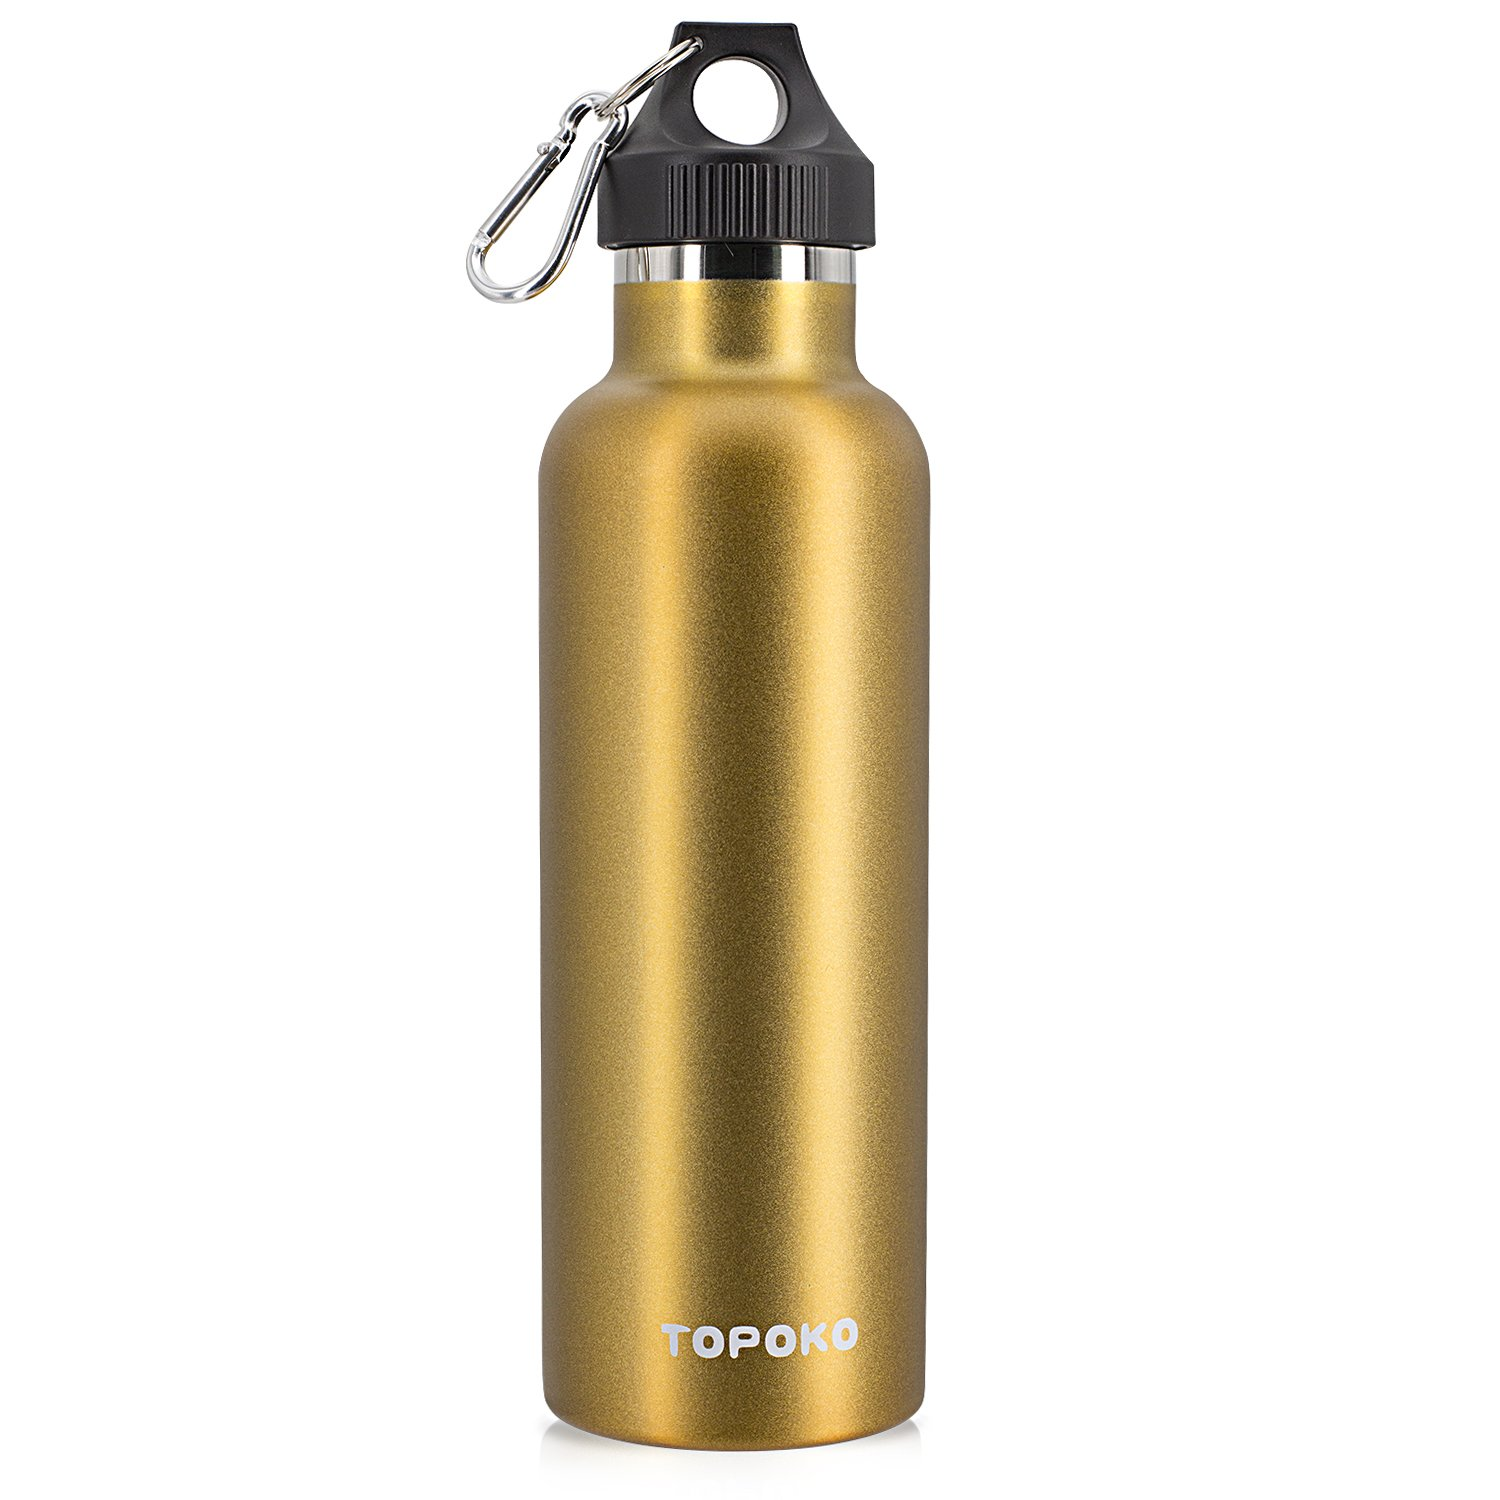 Stainless Steel Vacuum Insulated Water Bottle Double Wall - TOPOKO Top Quality Hydration Thermos - Camping Hiking Travel No Leak Rust Resistant Colored - 25 oz, Gold by TOPOKO (Image #1)